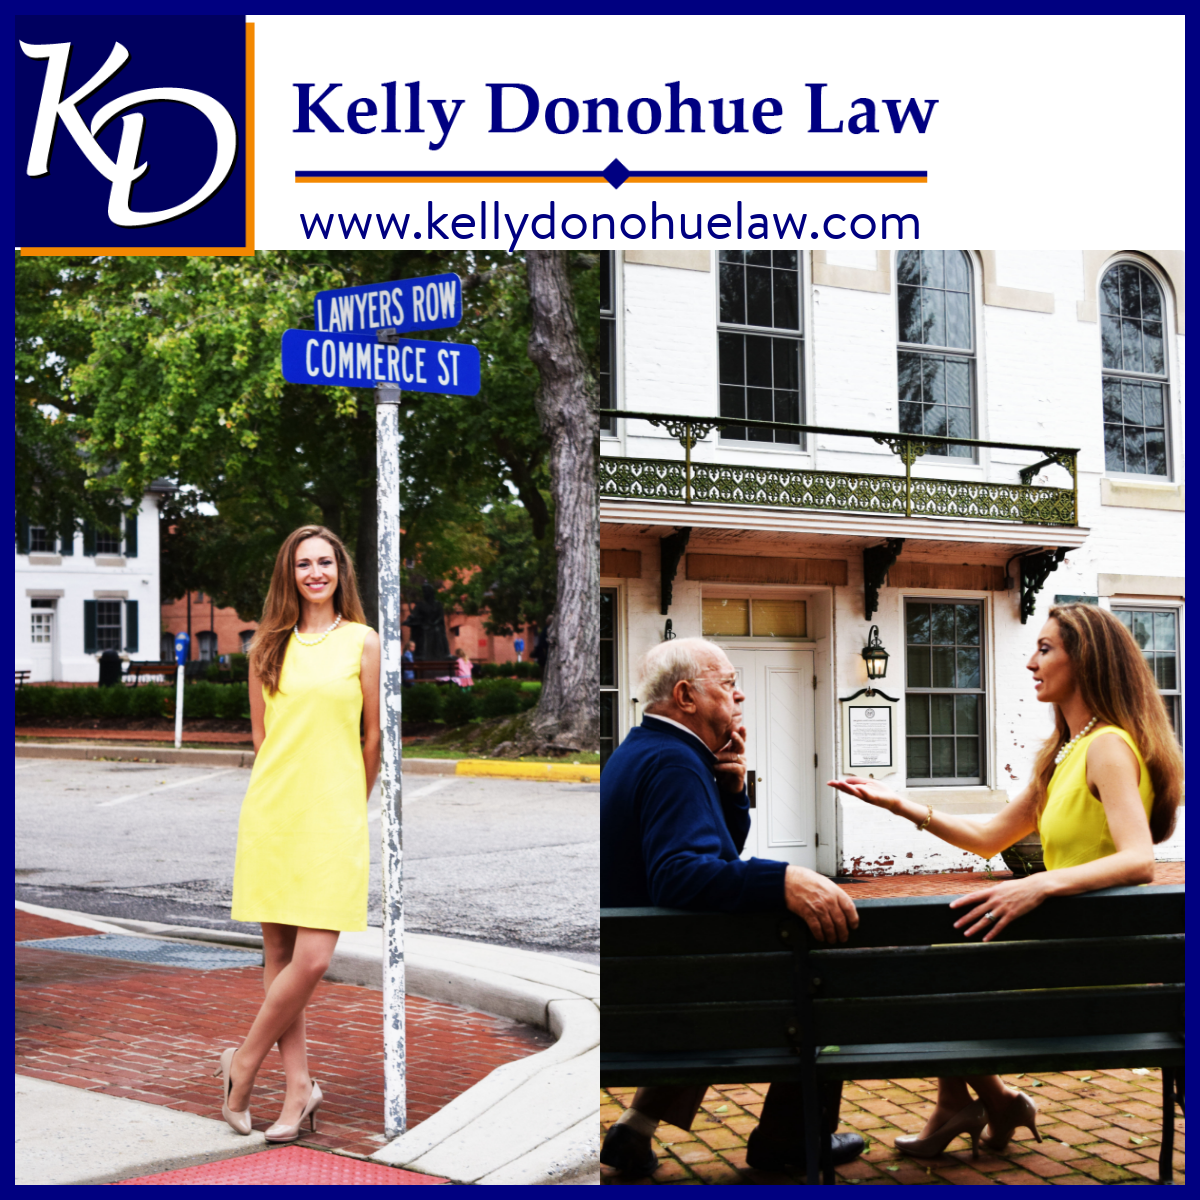 Law Offices of Kelly Donohue